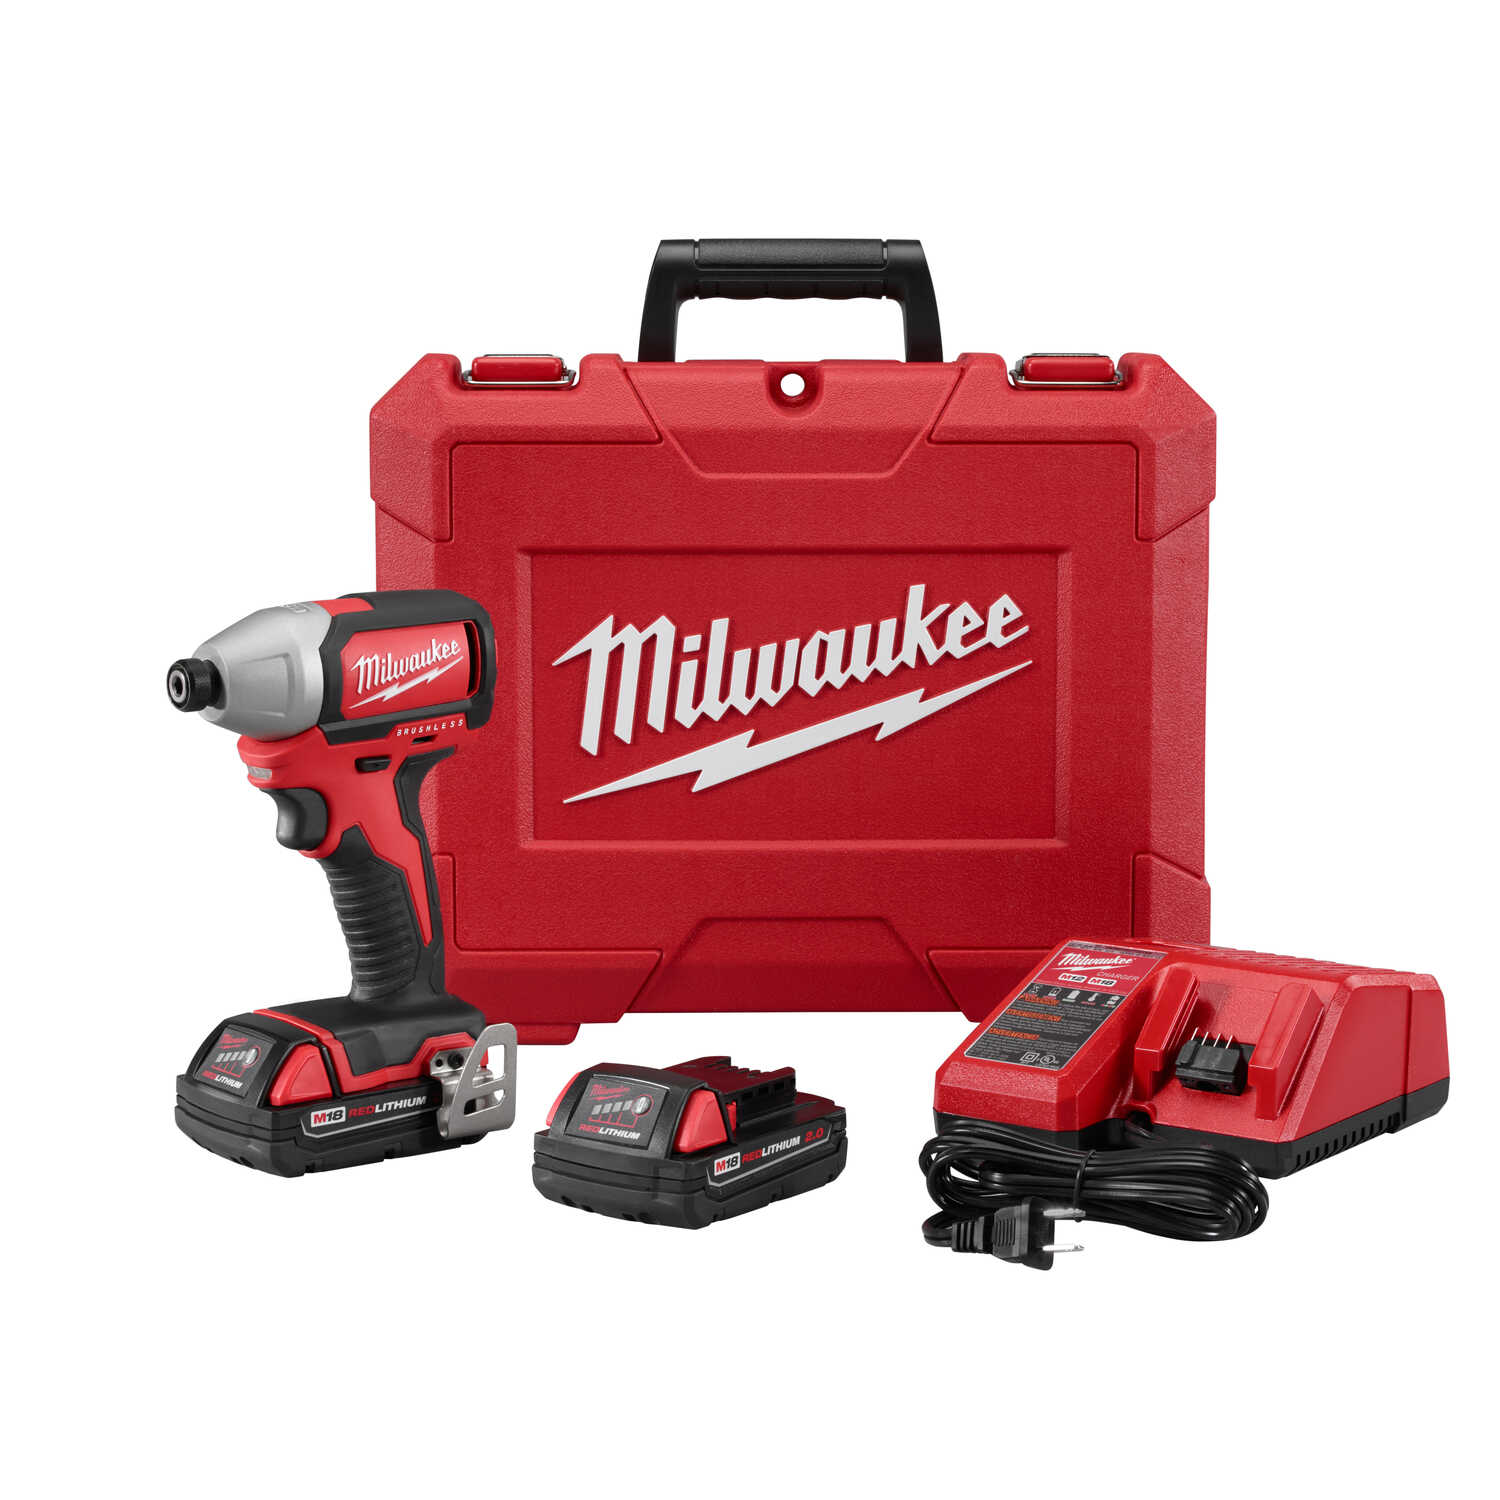 Milwaukee  M18  18 volt 1/4 in. Hex  Cordless  Brushless Impact Driver  Kit 1500 in-lb